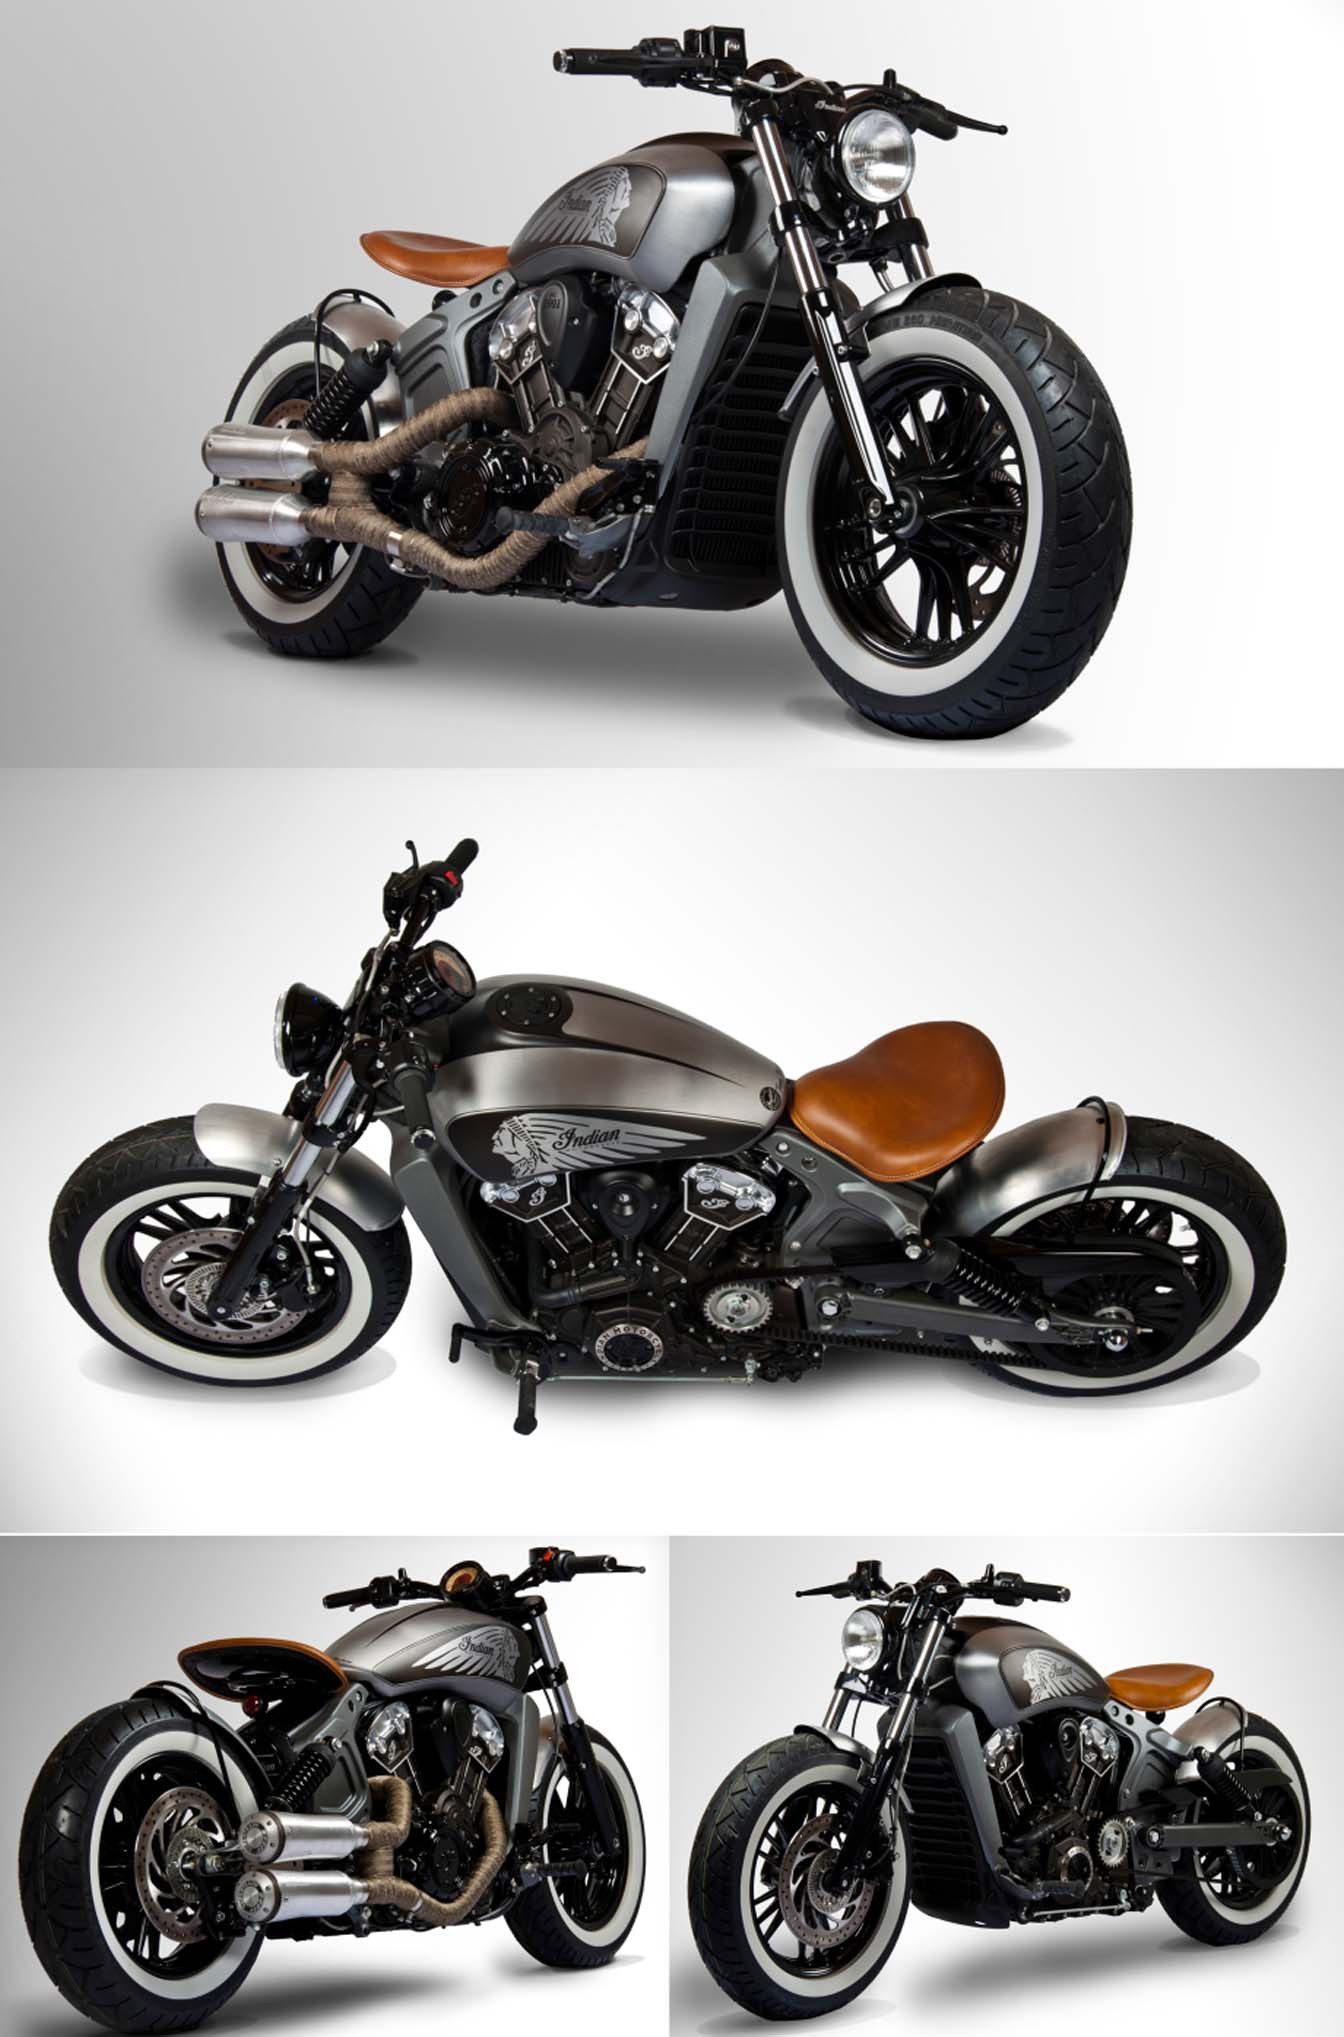 indian scout tank machine wog mag wheels of grace magazinewog mag wheels of grace magazine. Black Bedroom Furniture Sets. Home Design Ideas